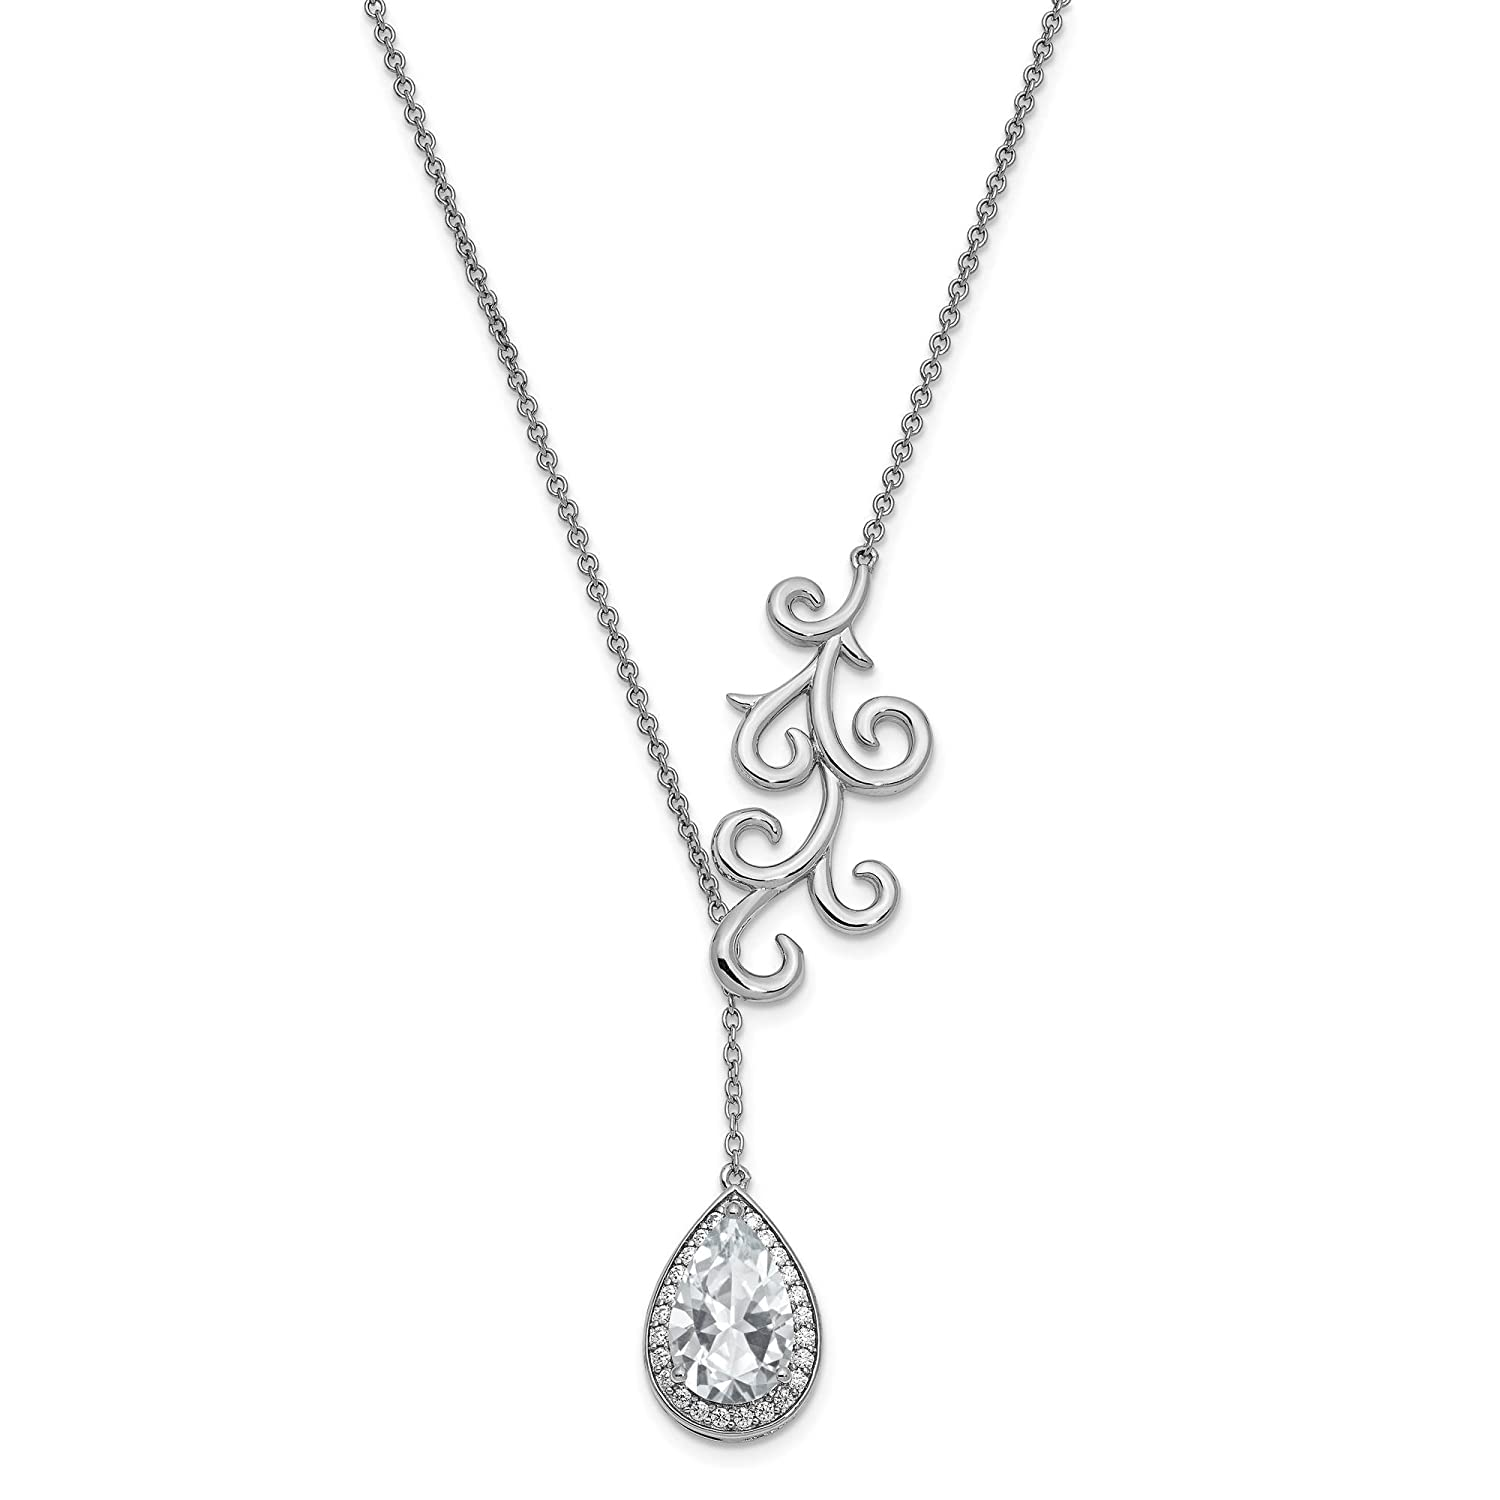 3//4 Ext by Sentimental Expressions Sterling Silver CZ To My Bride Teardrop Pendant Necklace 17.5